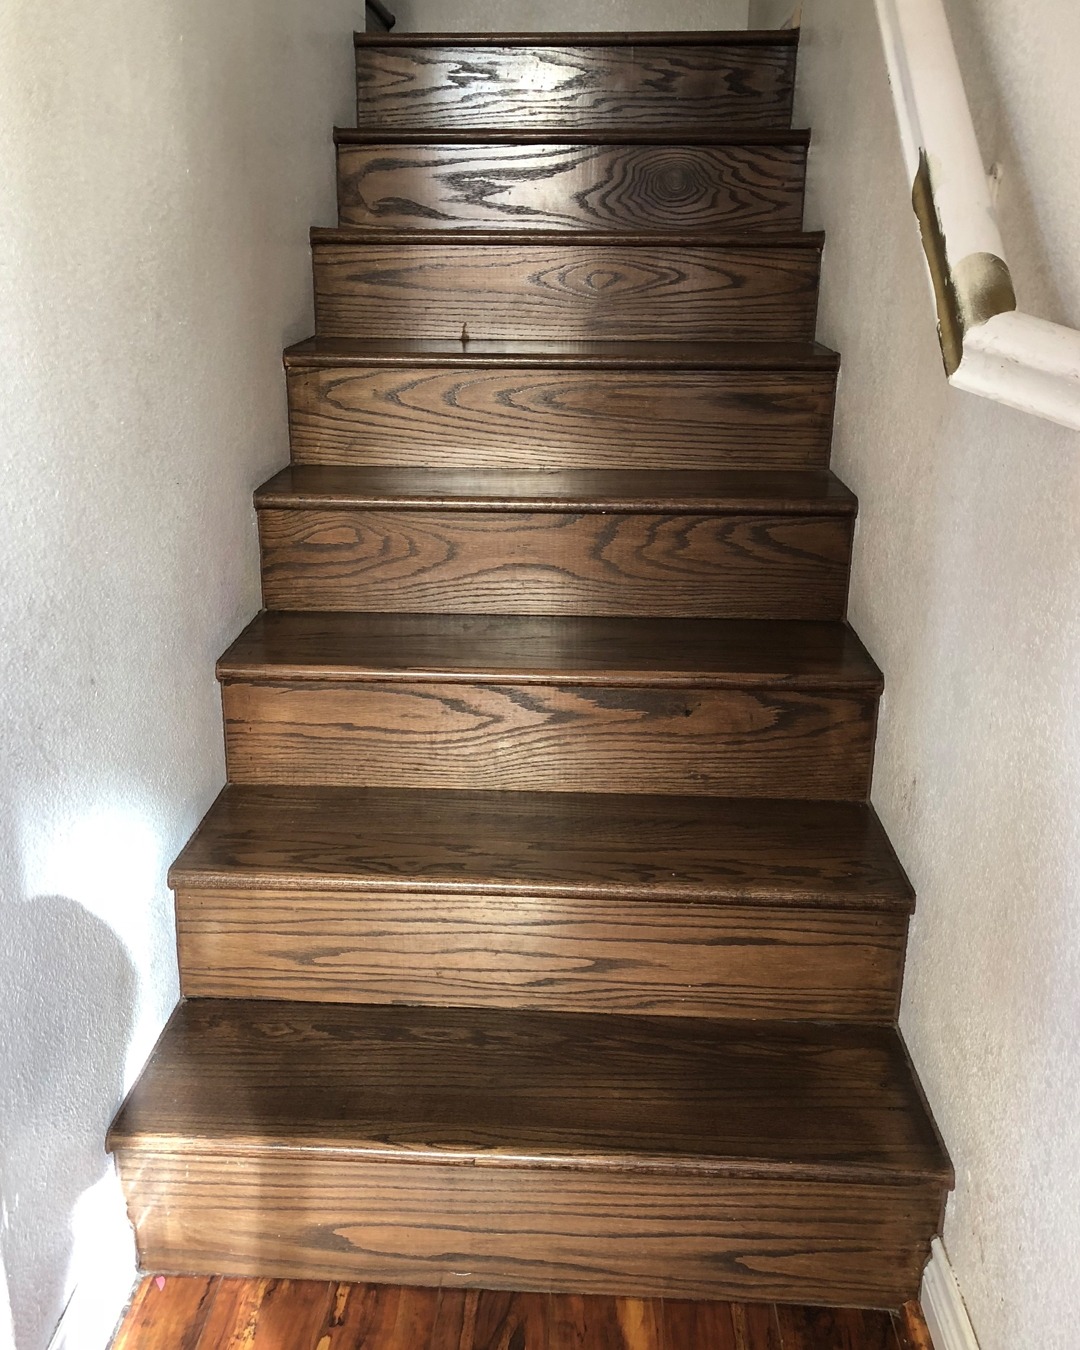 How To Paint Wood Stairs With Chalk Paint — Bb Frösch | Stairs Covered In Wood | Round | Interior | Metal | Random | Luxury